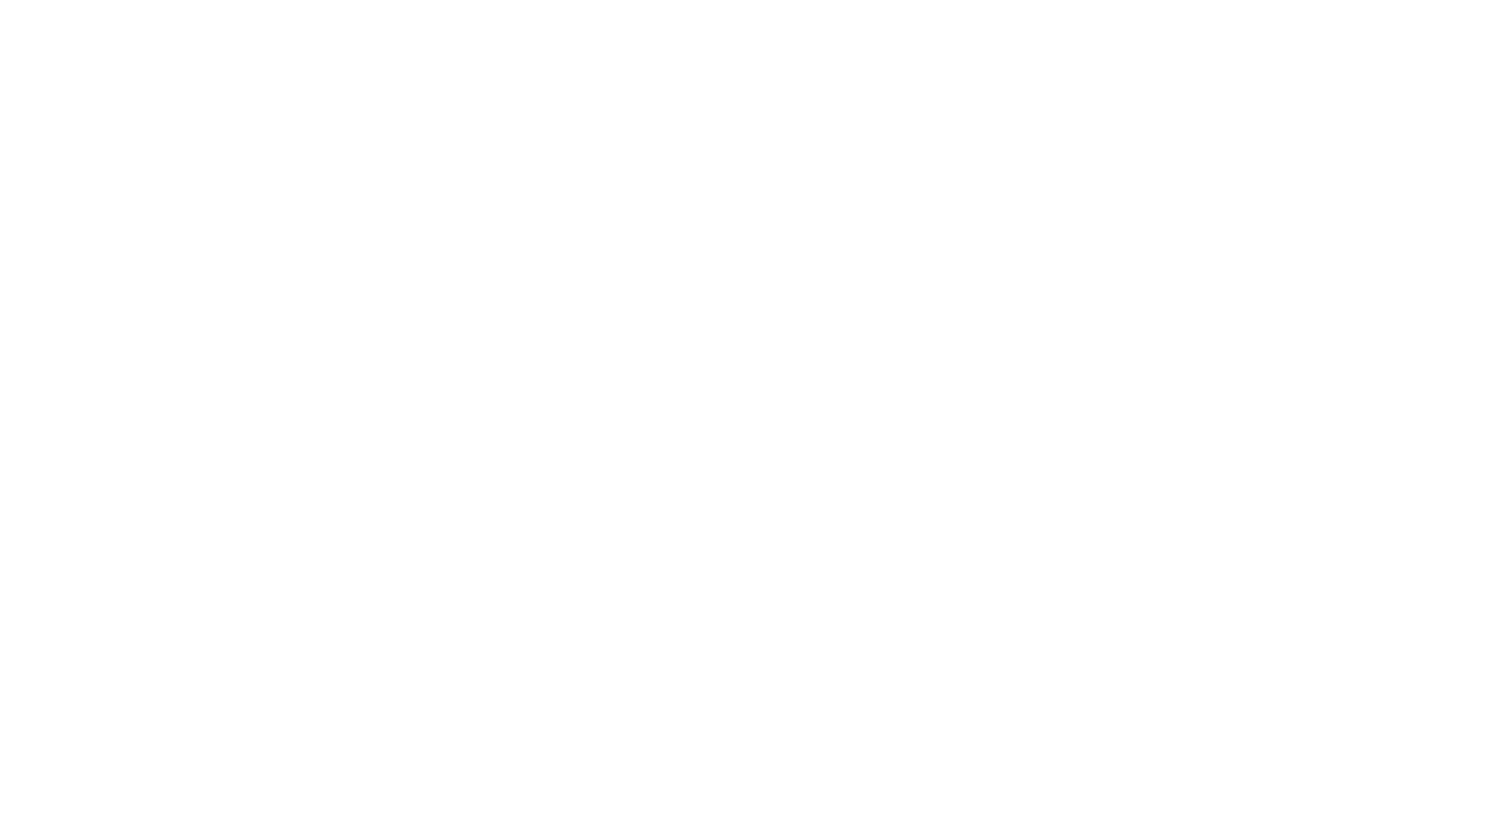 Joe Ballance Entertainment